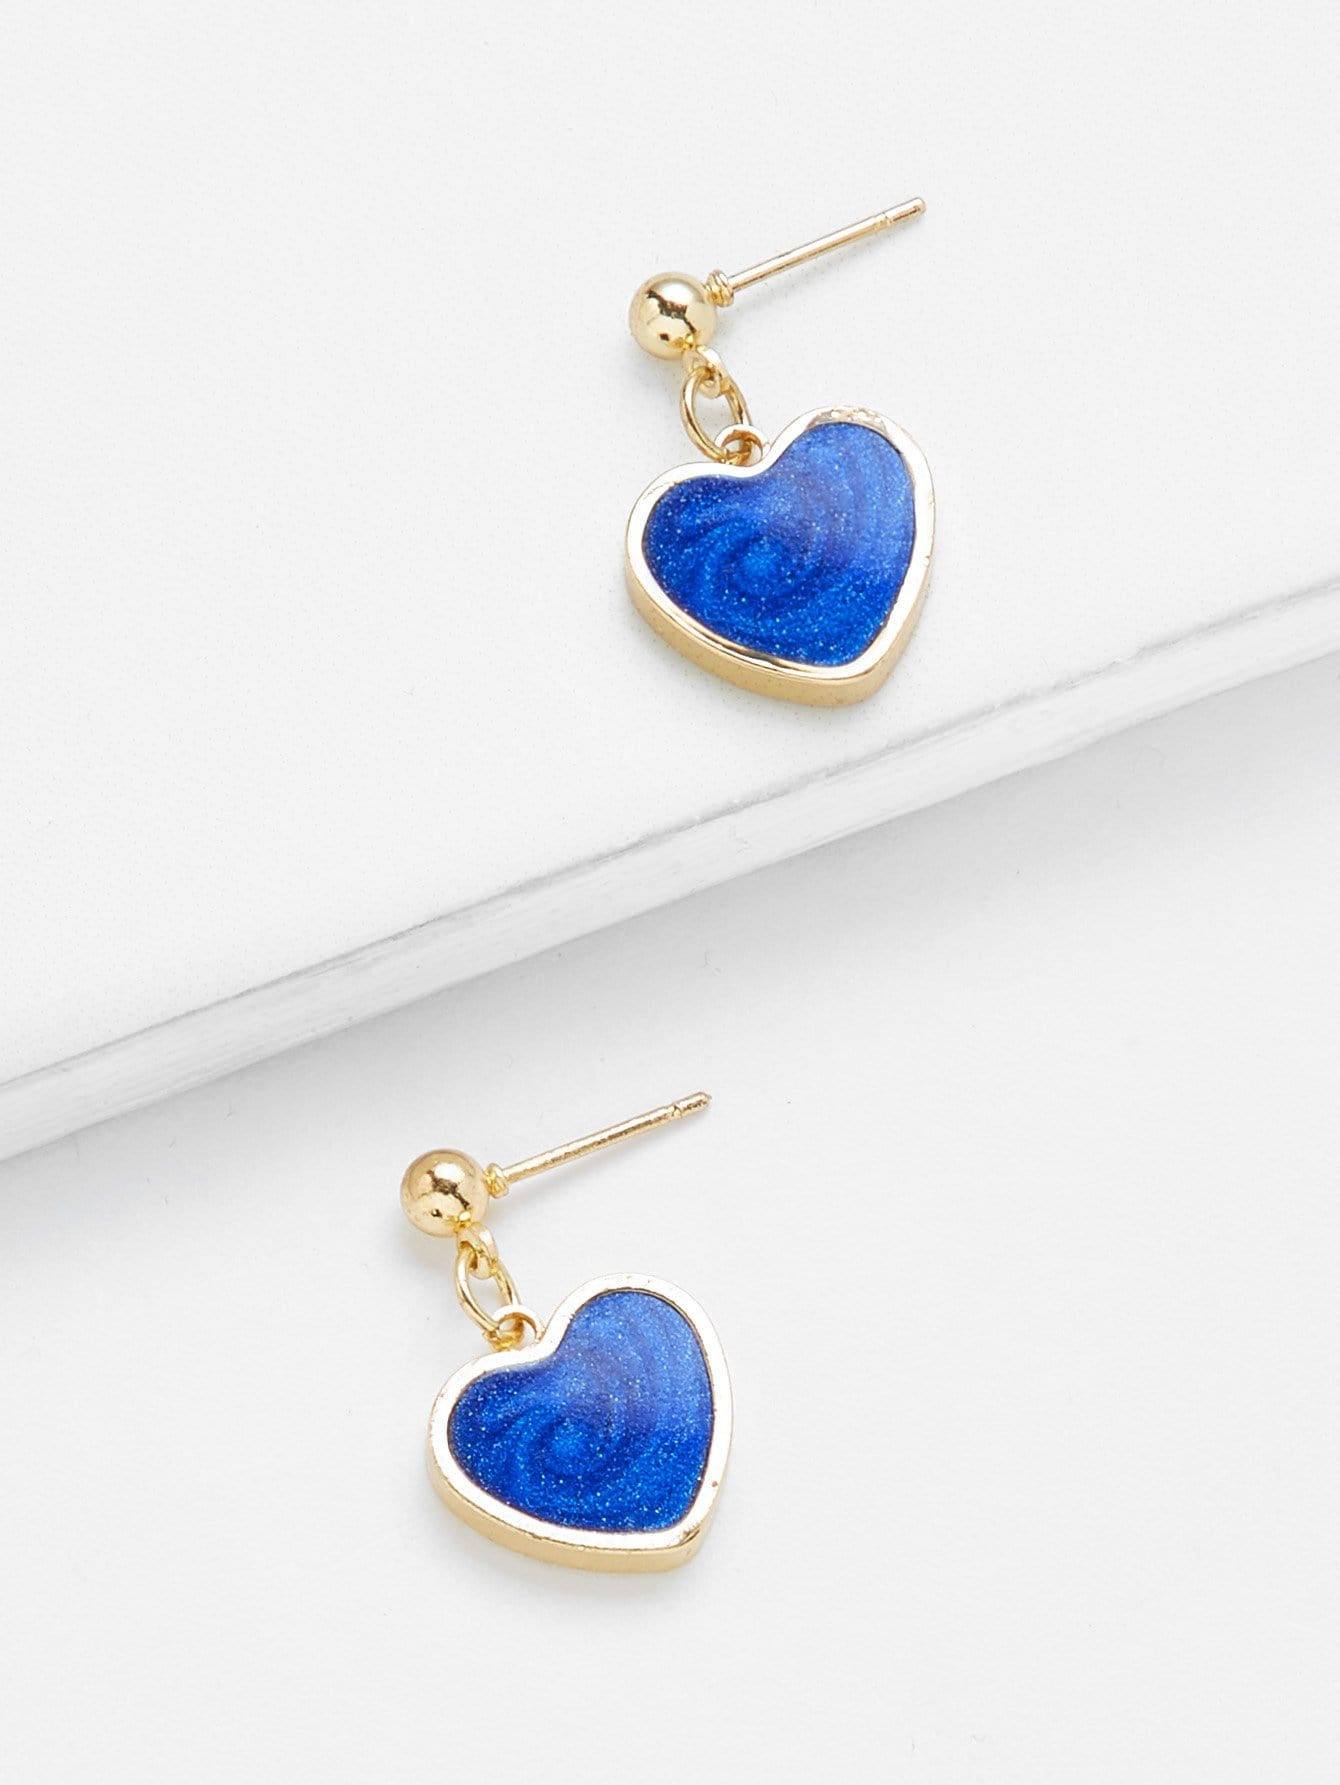 Heart Shaped Drop Earrings hollow water drop shaped drop earrings